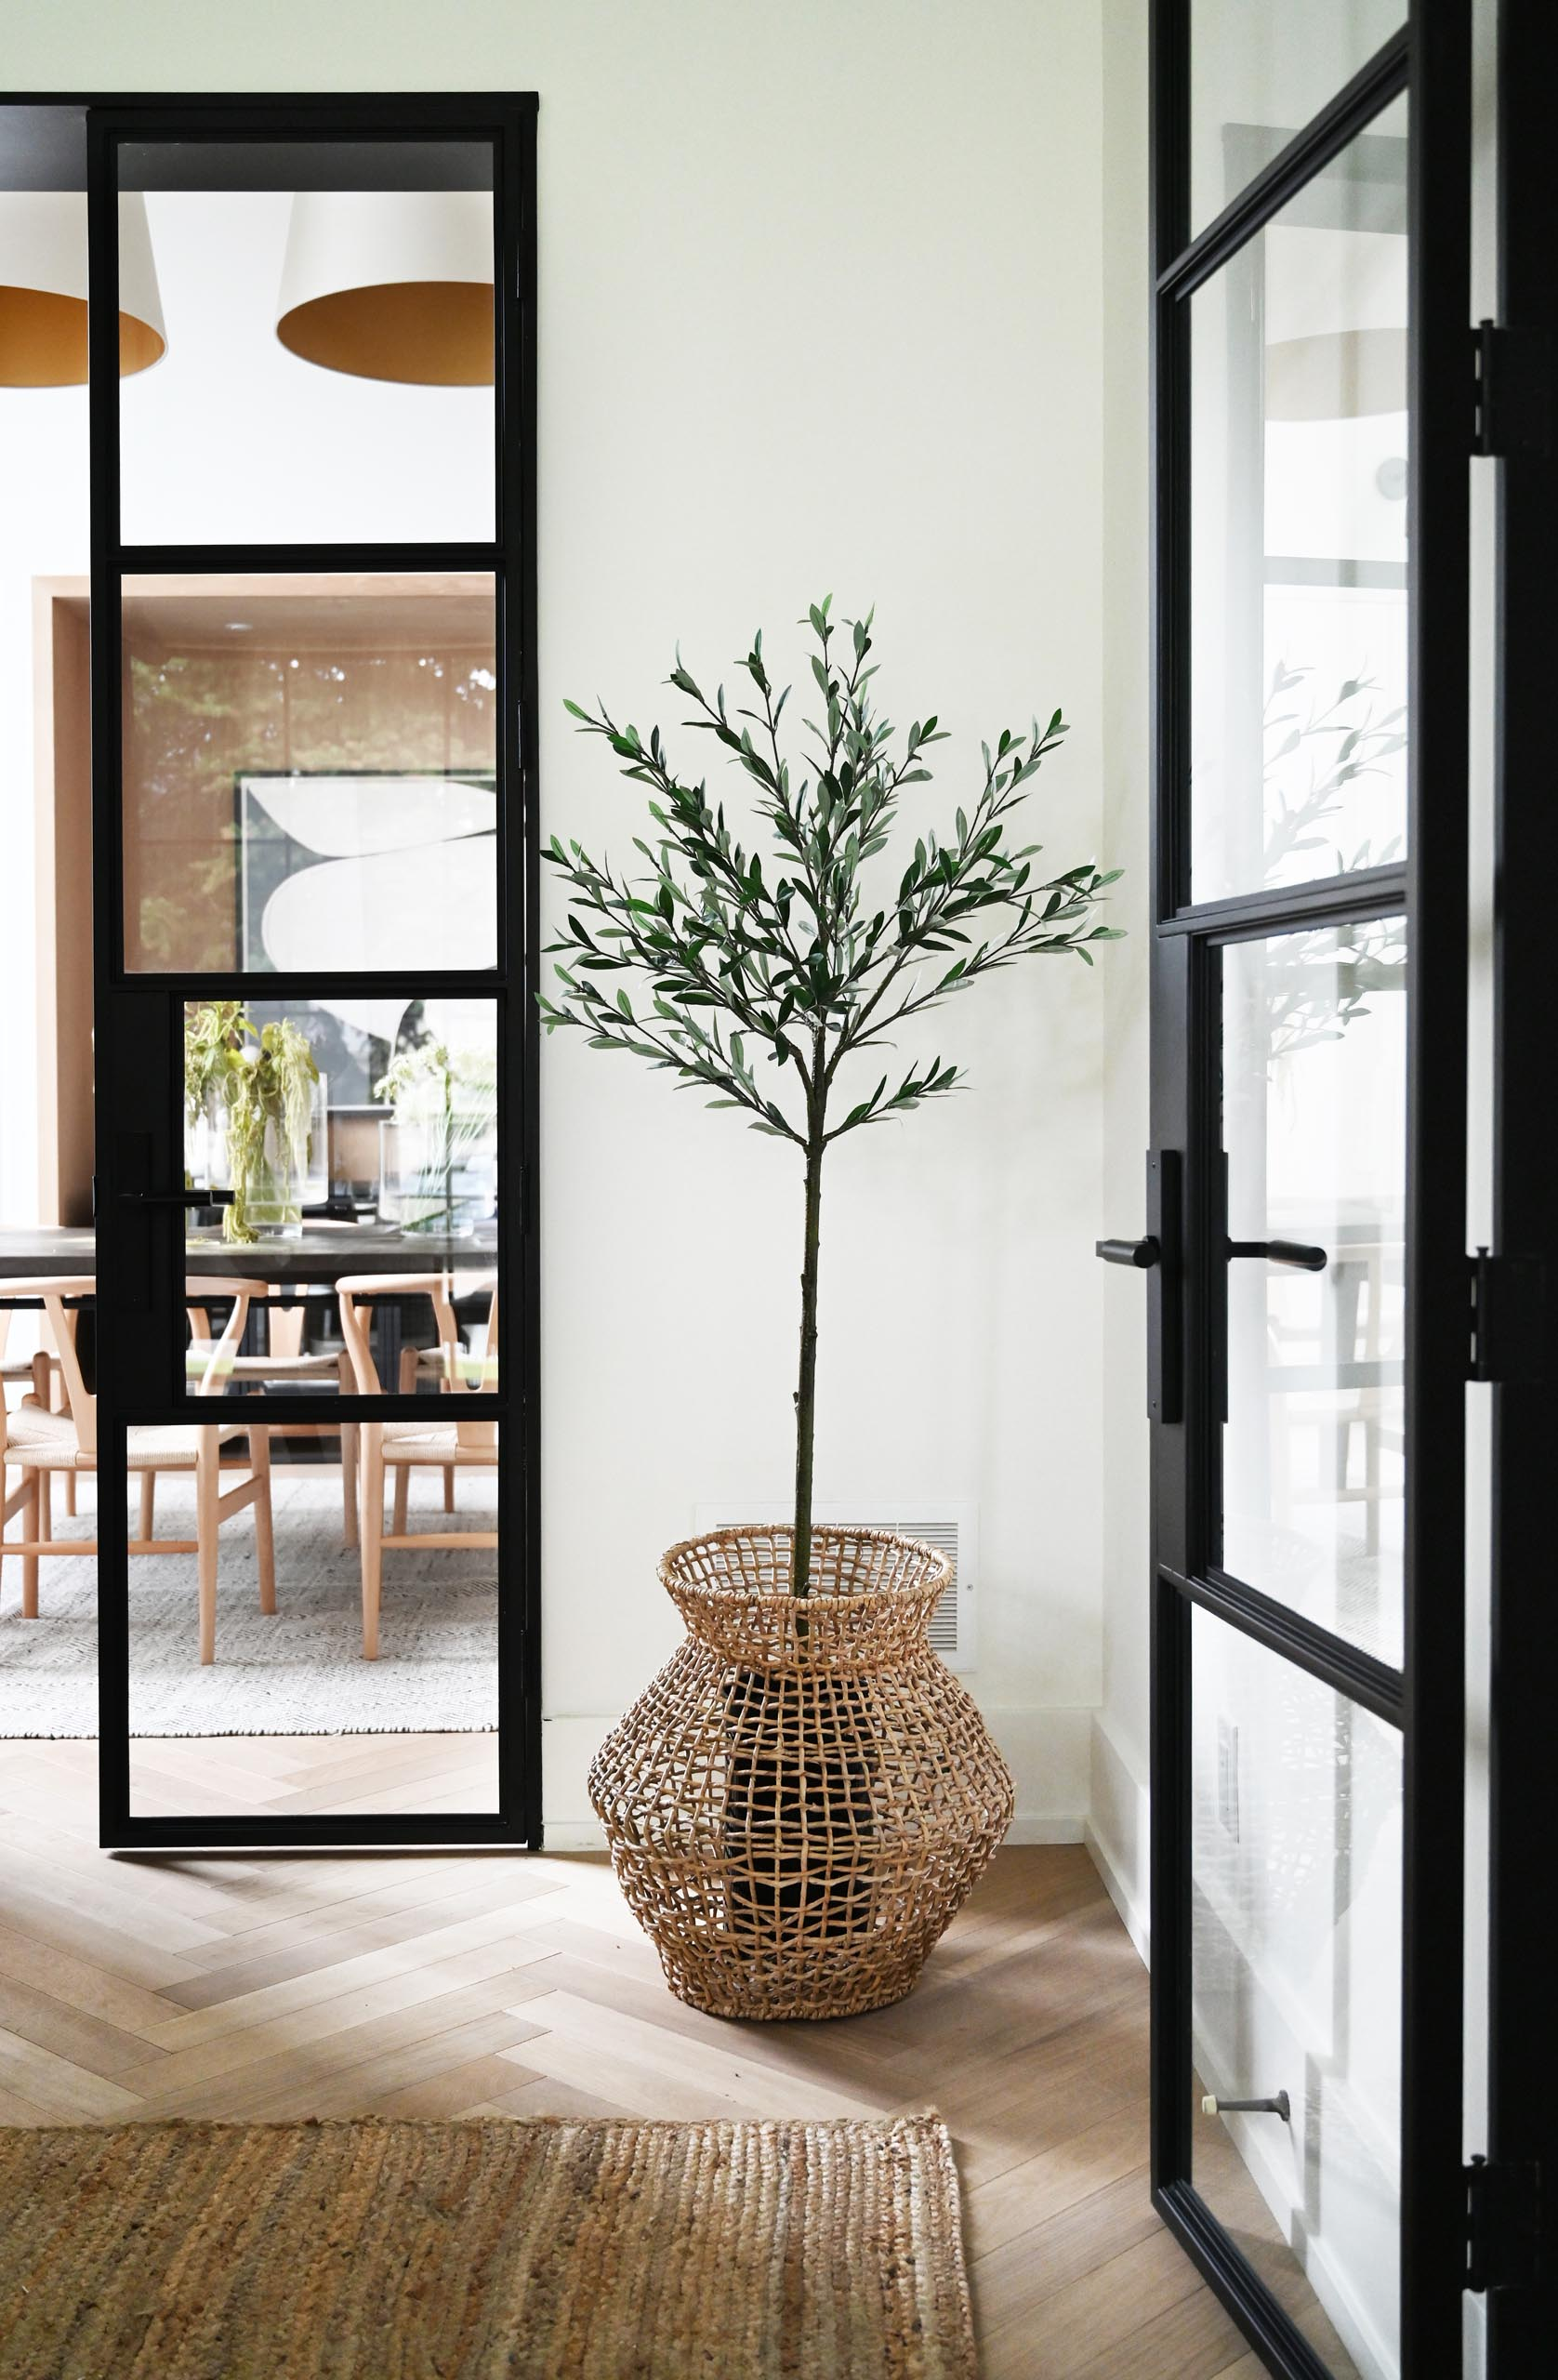 Connecting various areas of the interior are black-framed glass doors that provide a glimpse of the other rooms.